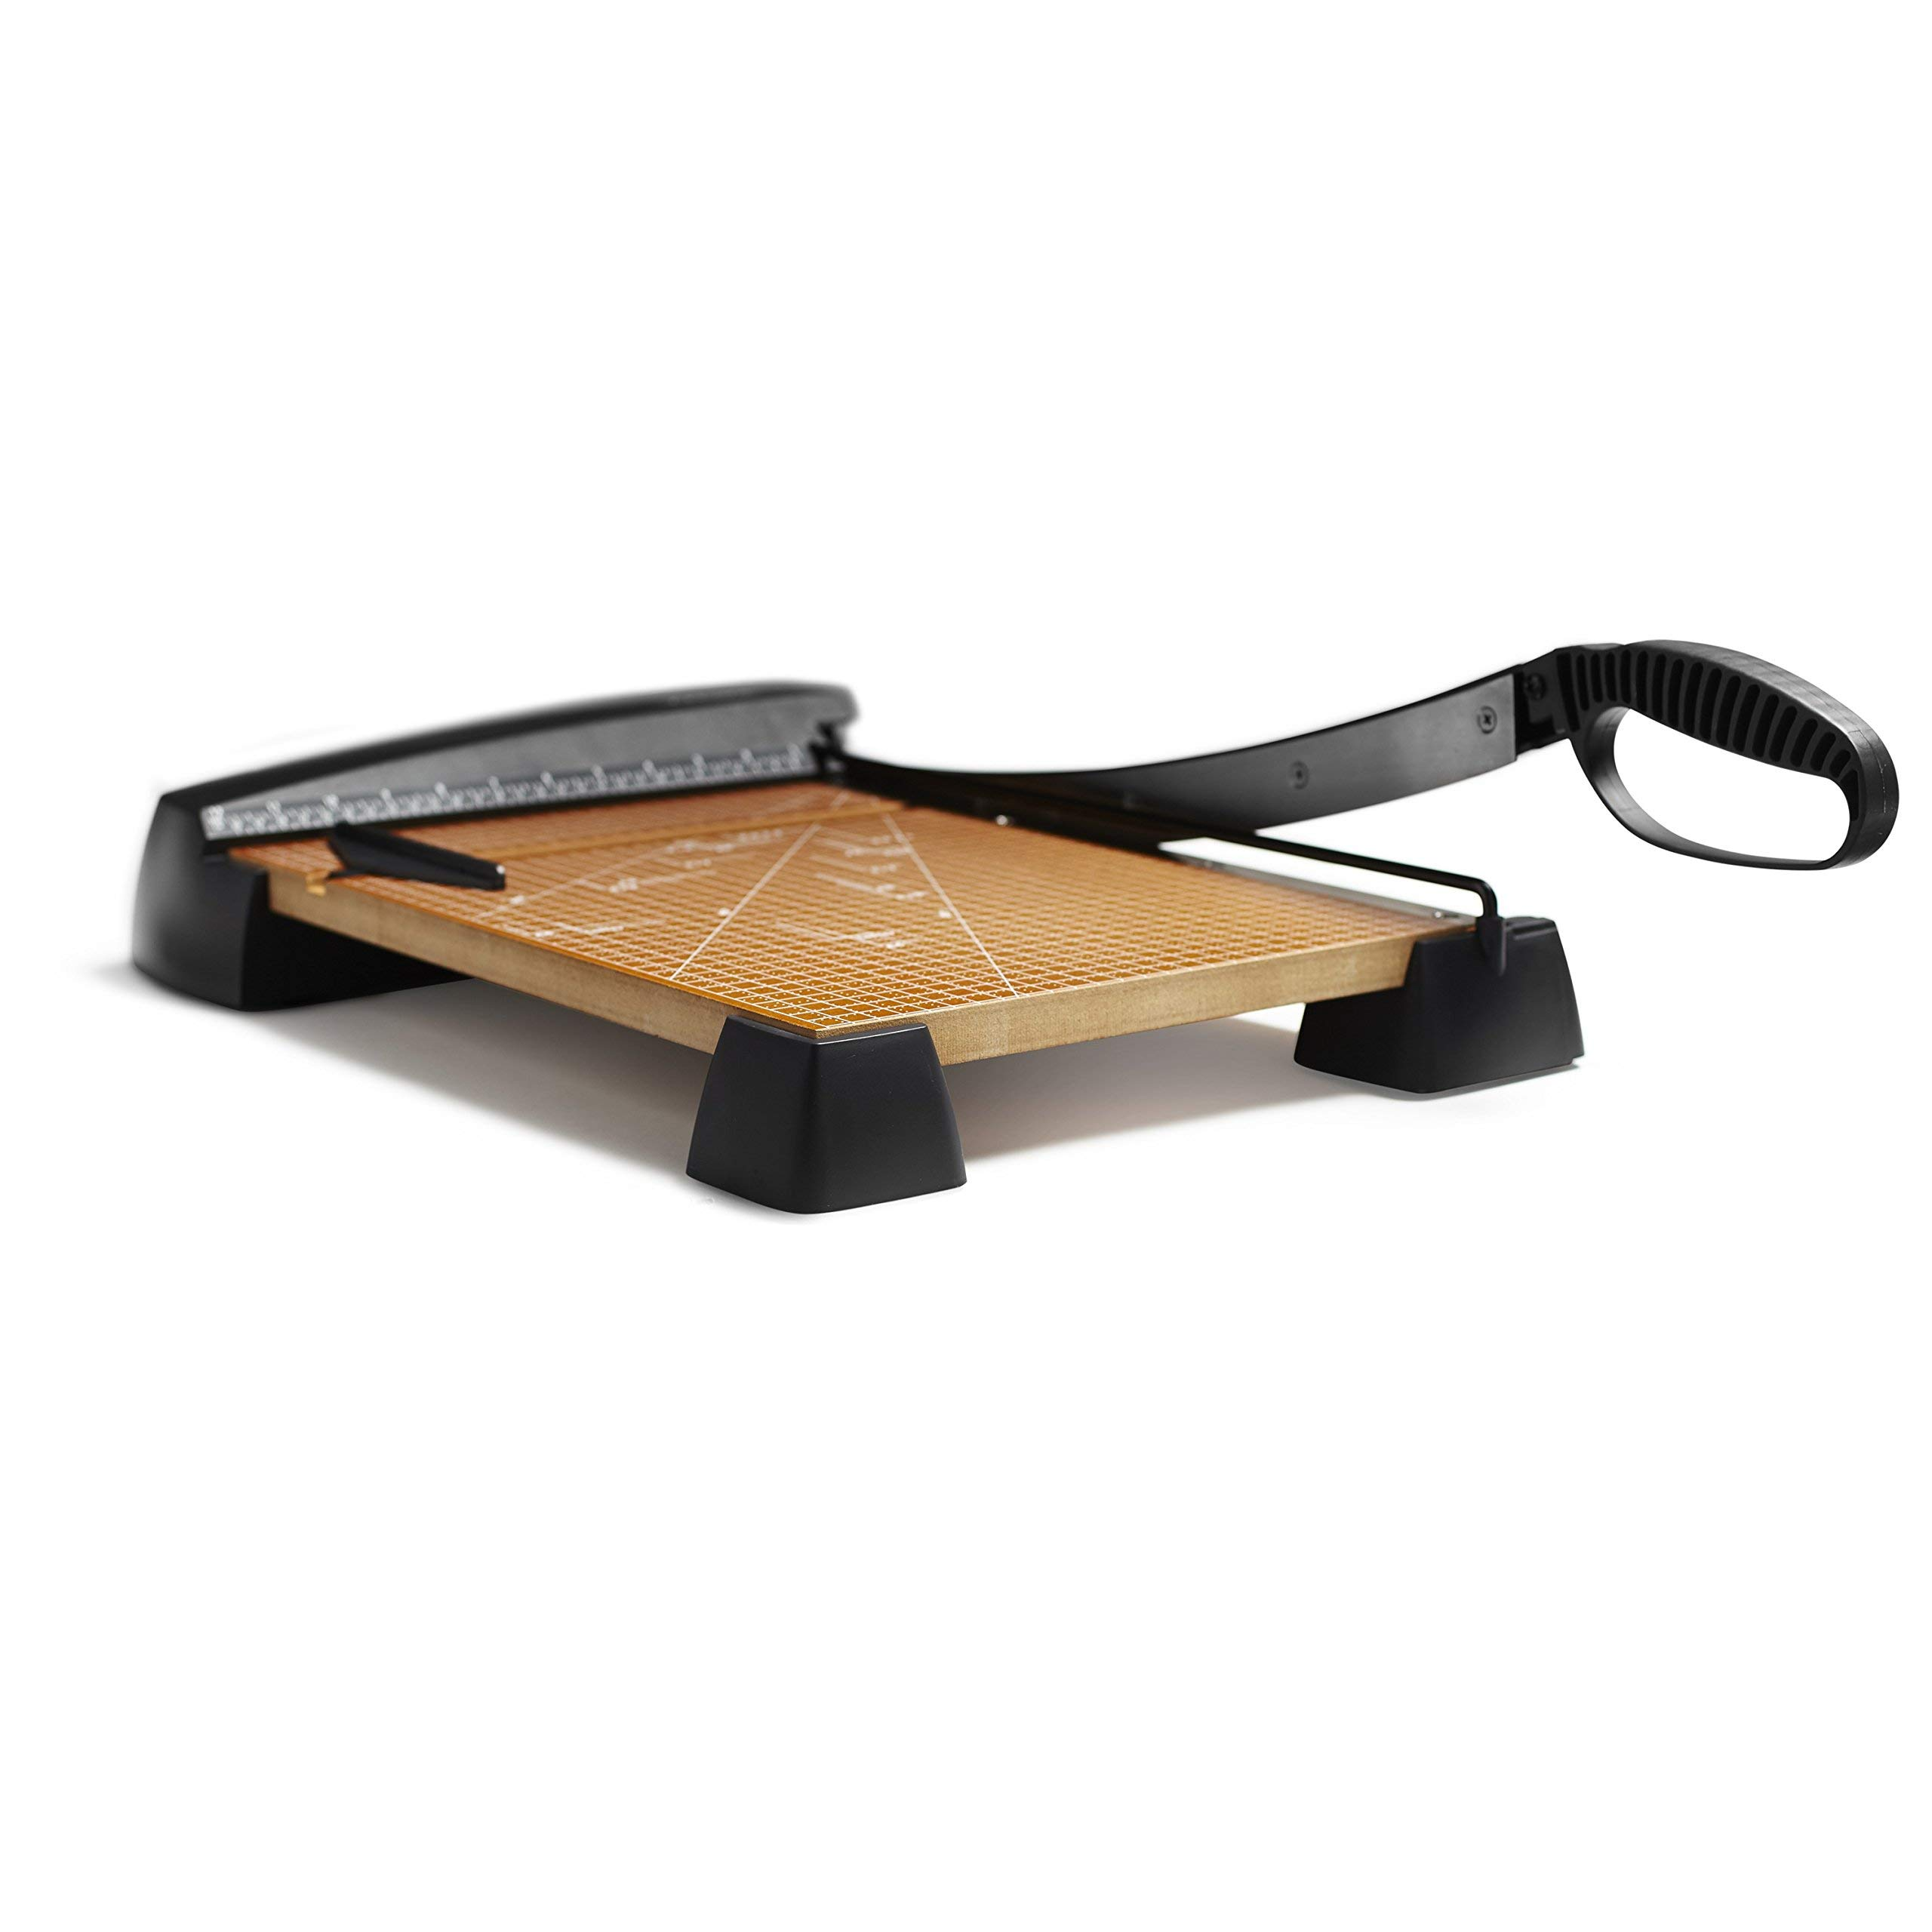 X-ACTO Heavy Duty Wood Guillotine Trimmer, 15 Inches (Renewed) by X-Acto